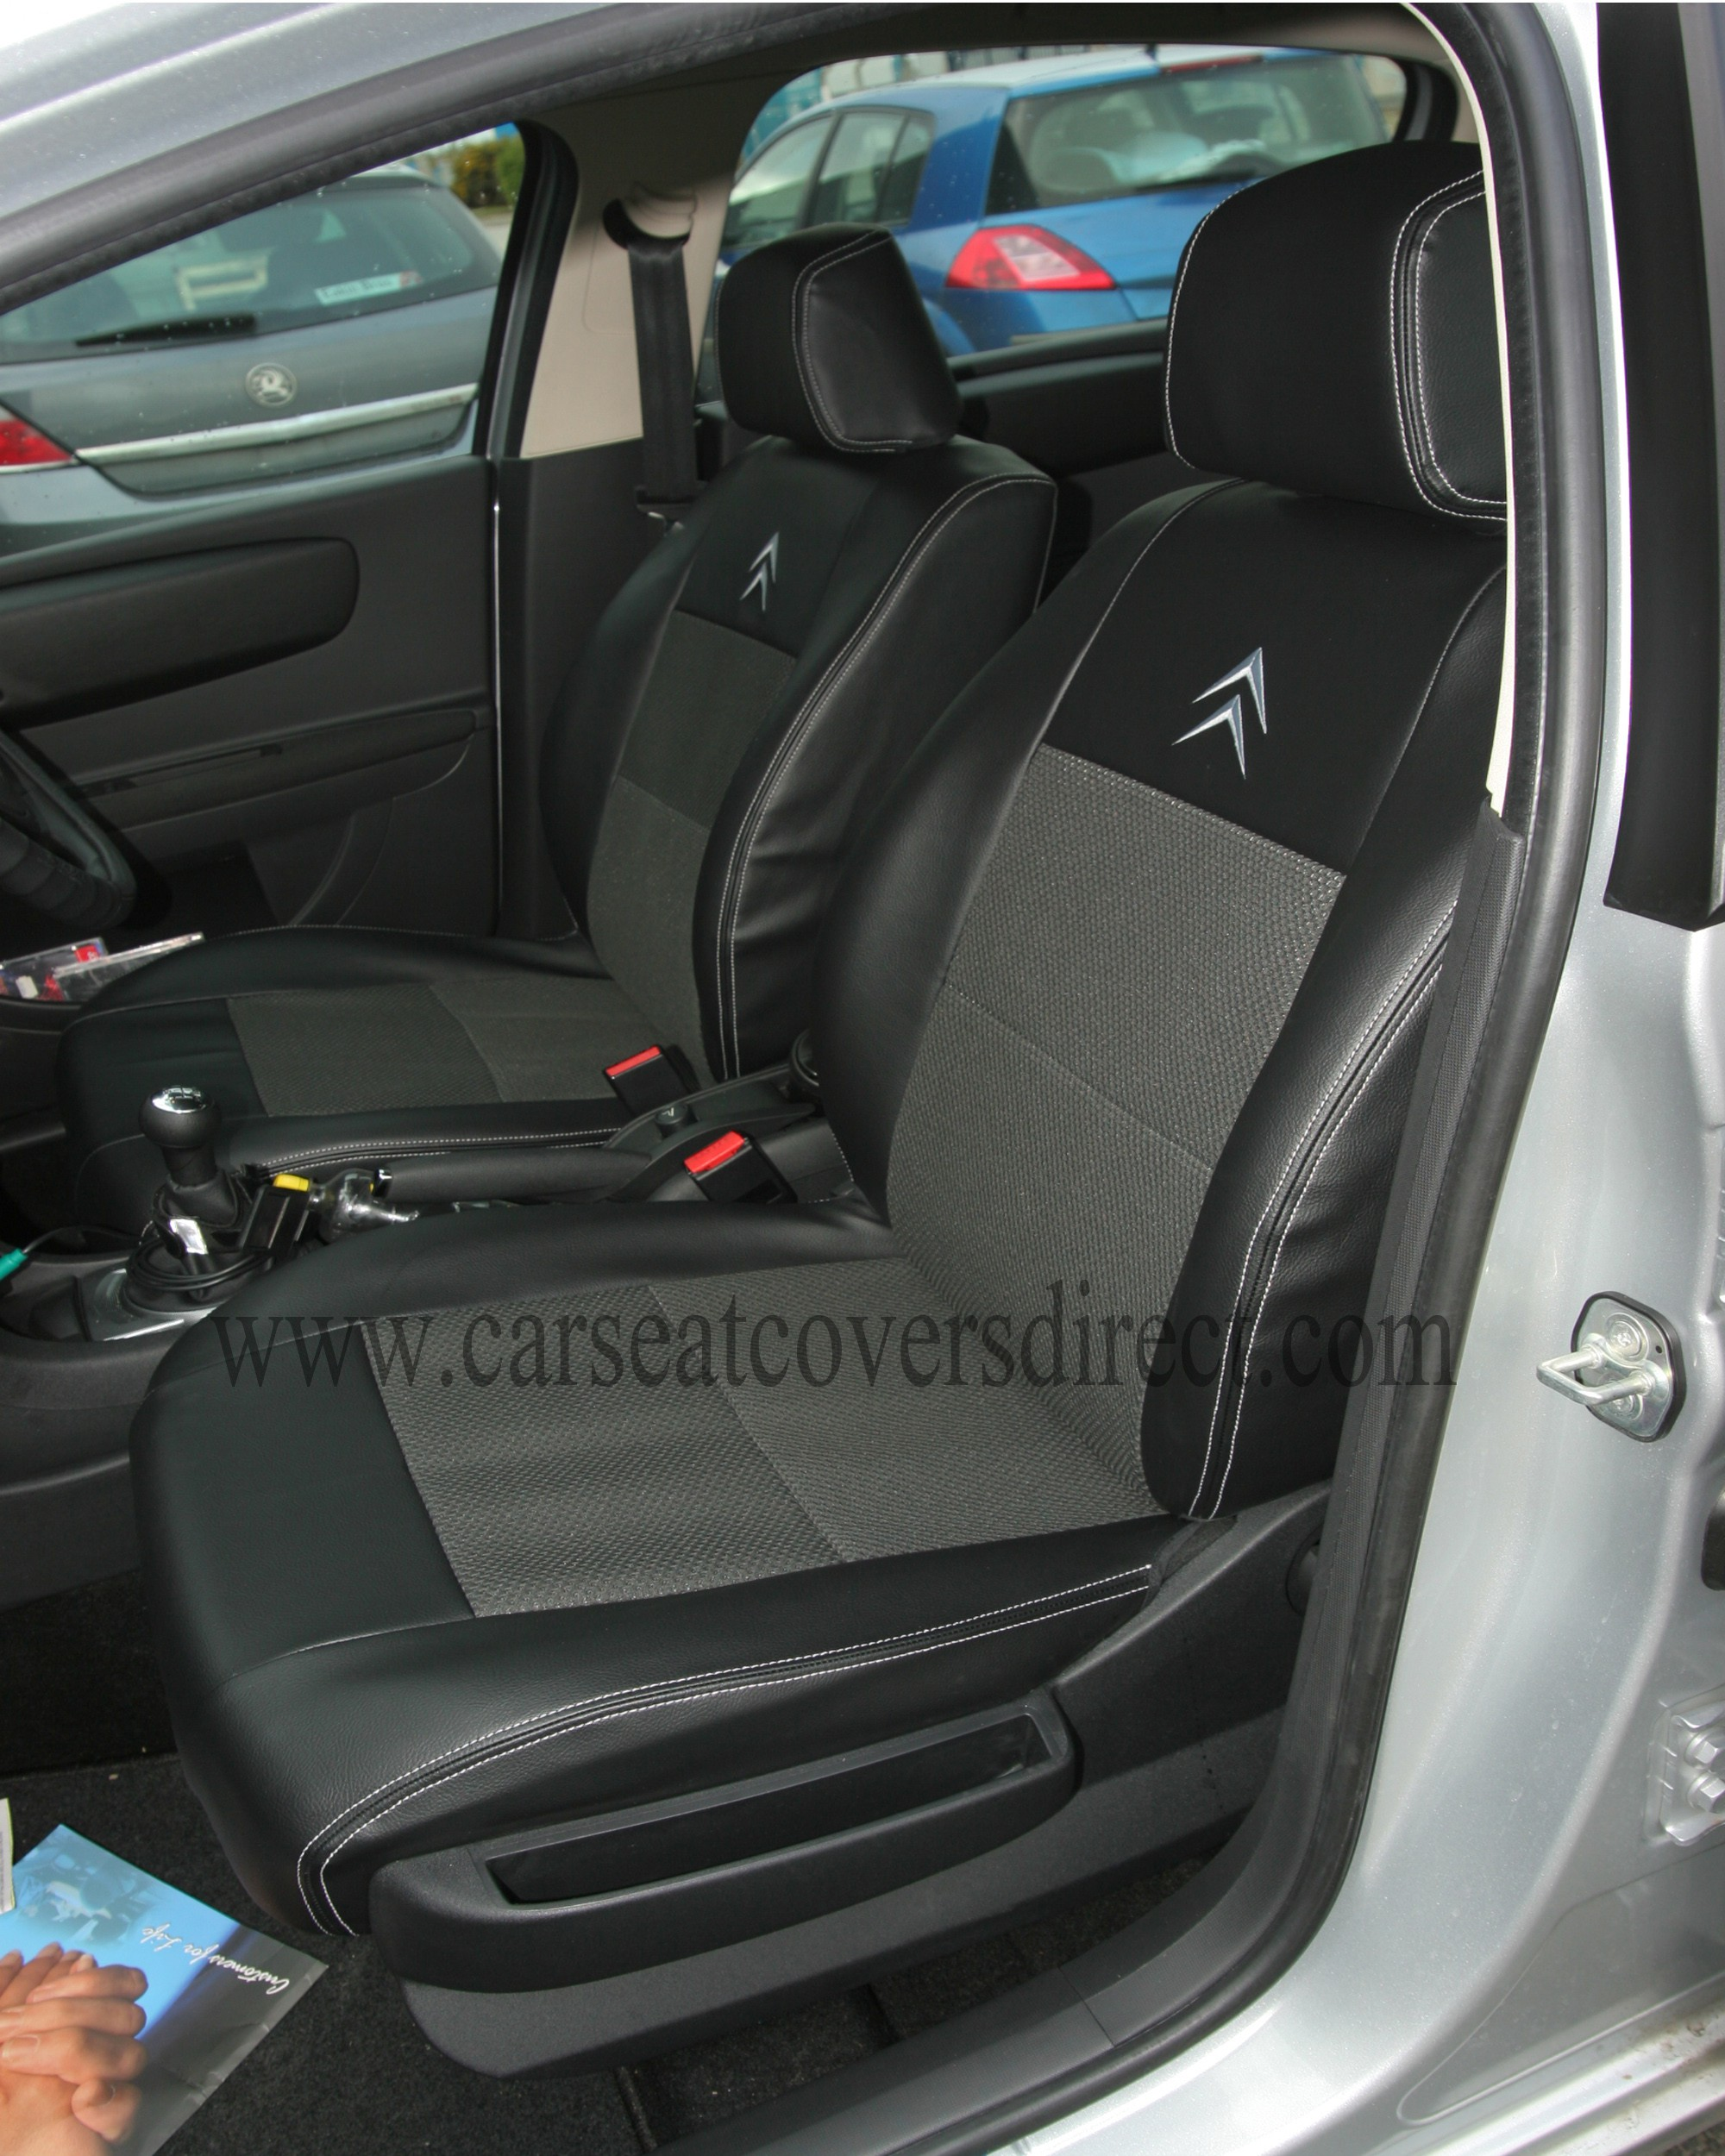 CITROEN C4 1ST GEN Seat Covers